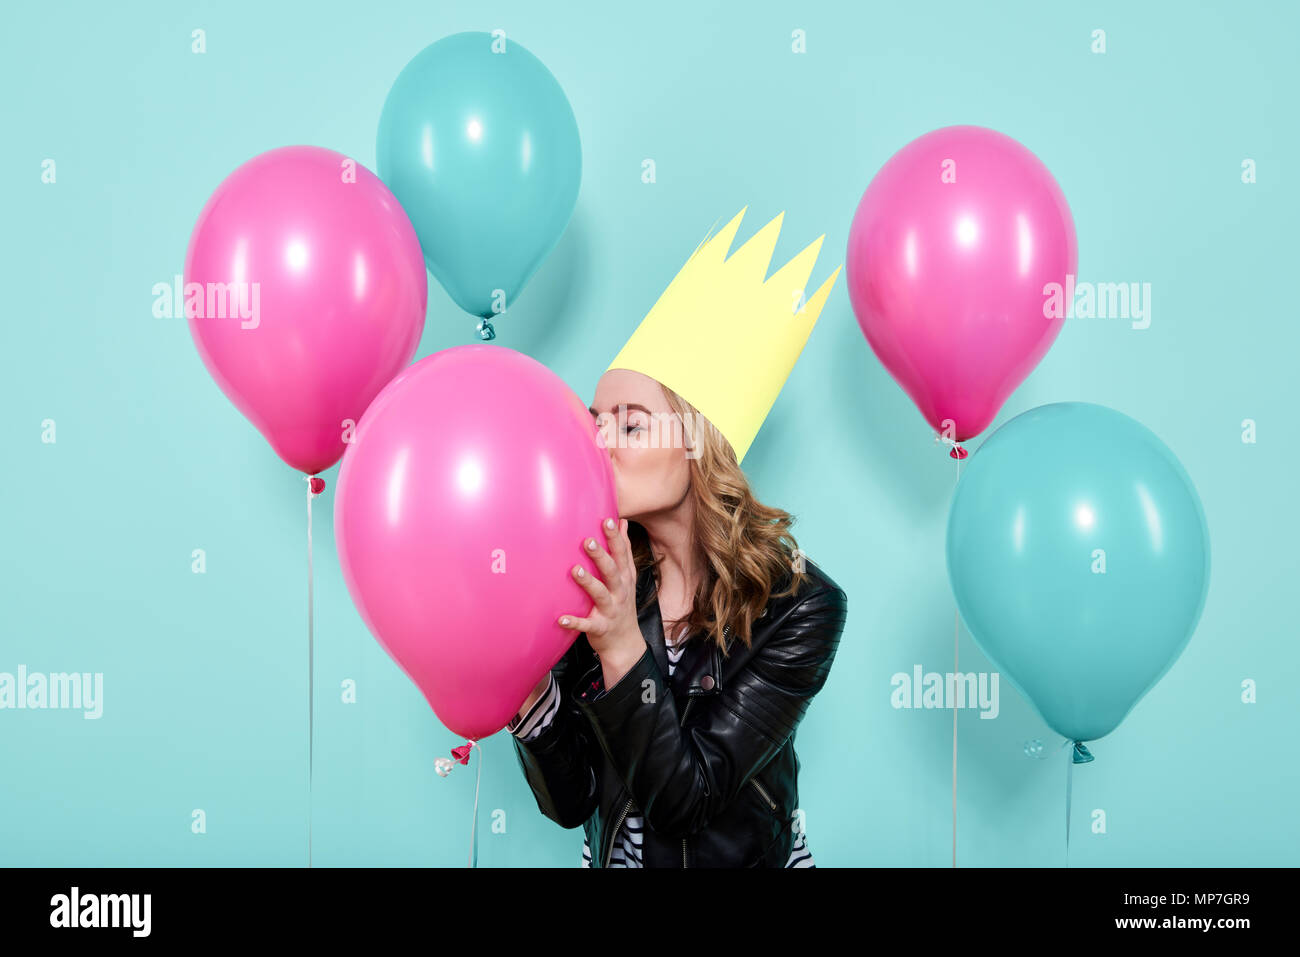 Gorgeous young woman in leather jacket and party hat kissing colourful balloon, isolated over pastel blue colored background. Birthday Party concept. - Stock Image